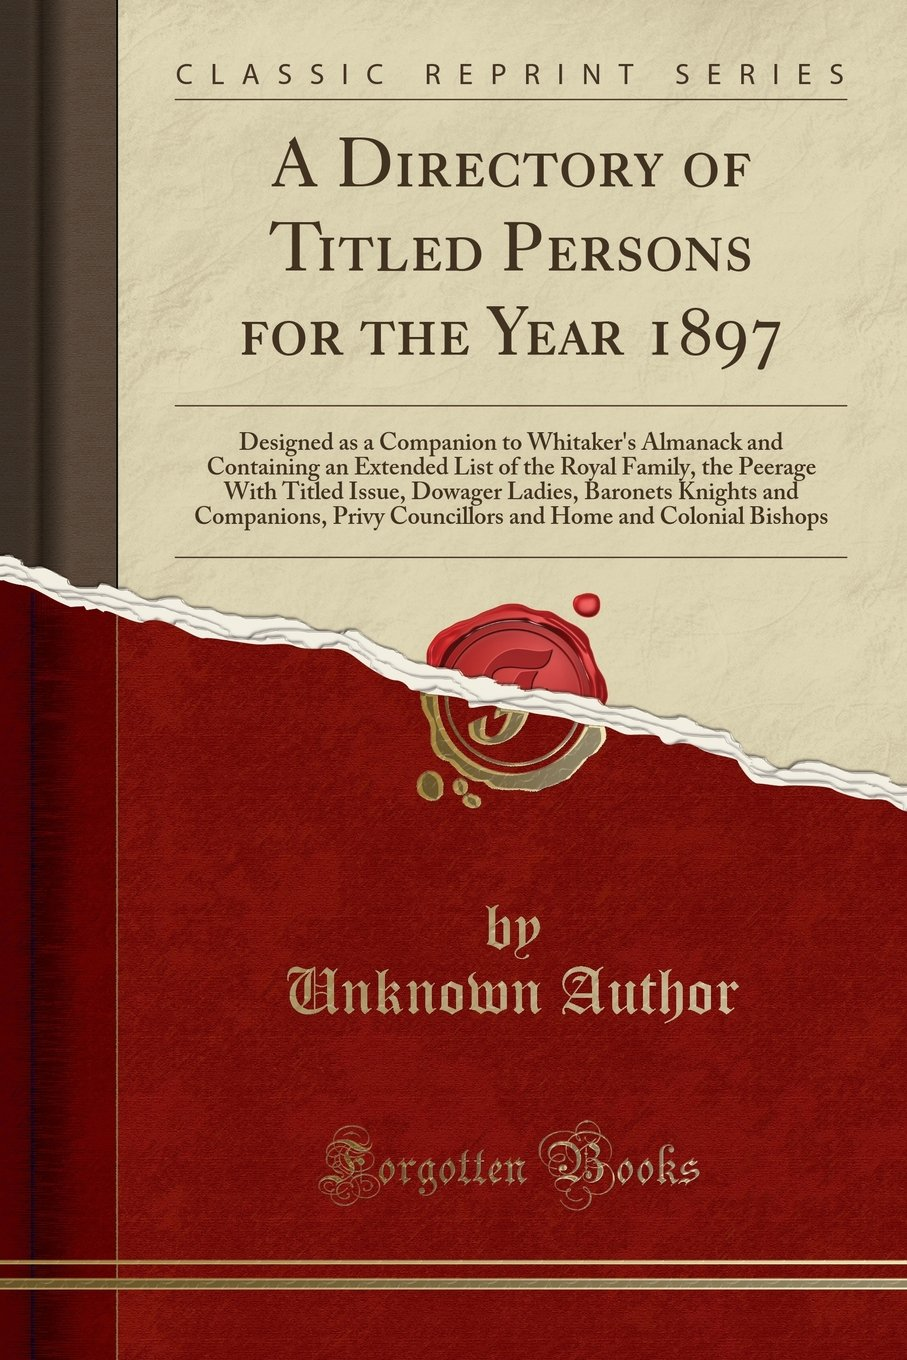 A Directory of Titled Persons for the Year 1897: Designed as a Companion to Whitaker's Almanack and Containing an Extended List of the Royal Family, ... and Companions, Privy Councillors and Home pdf